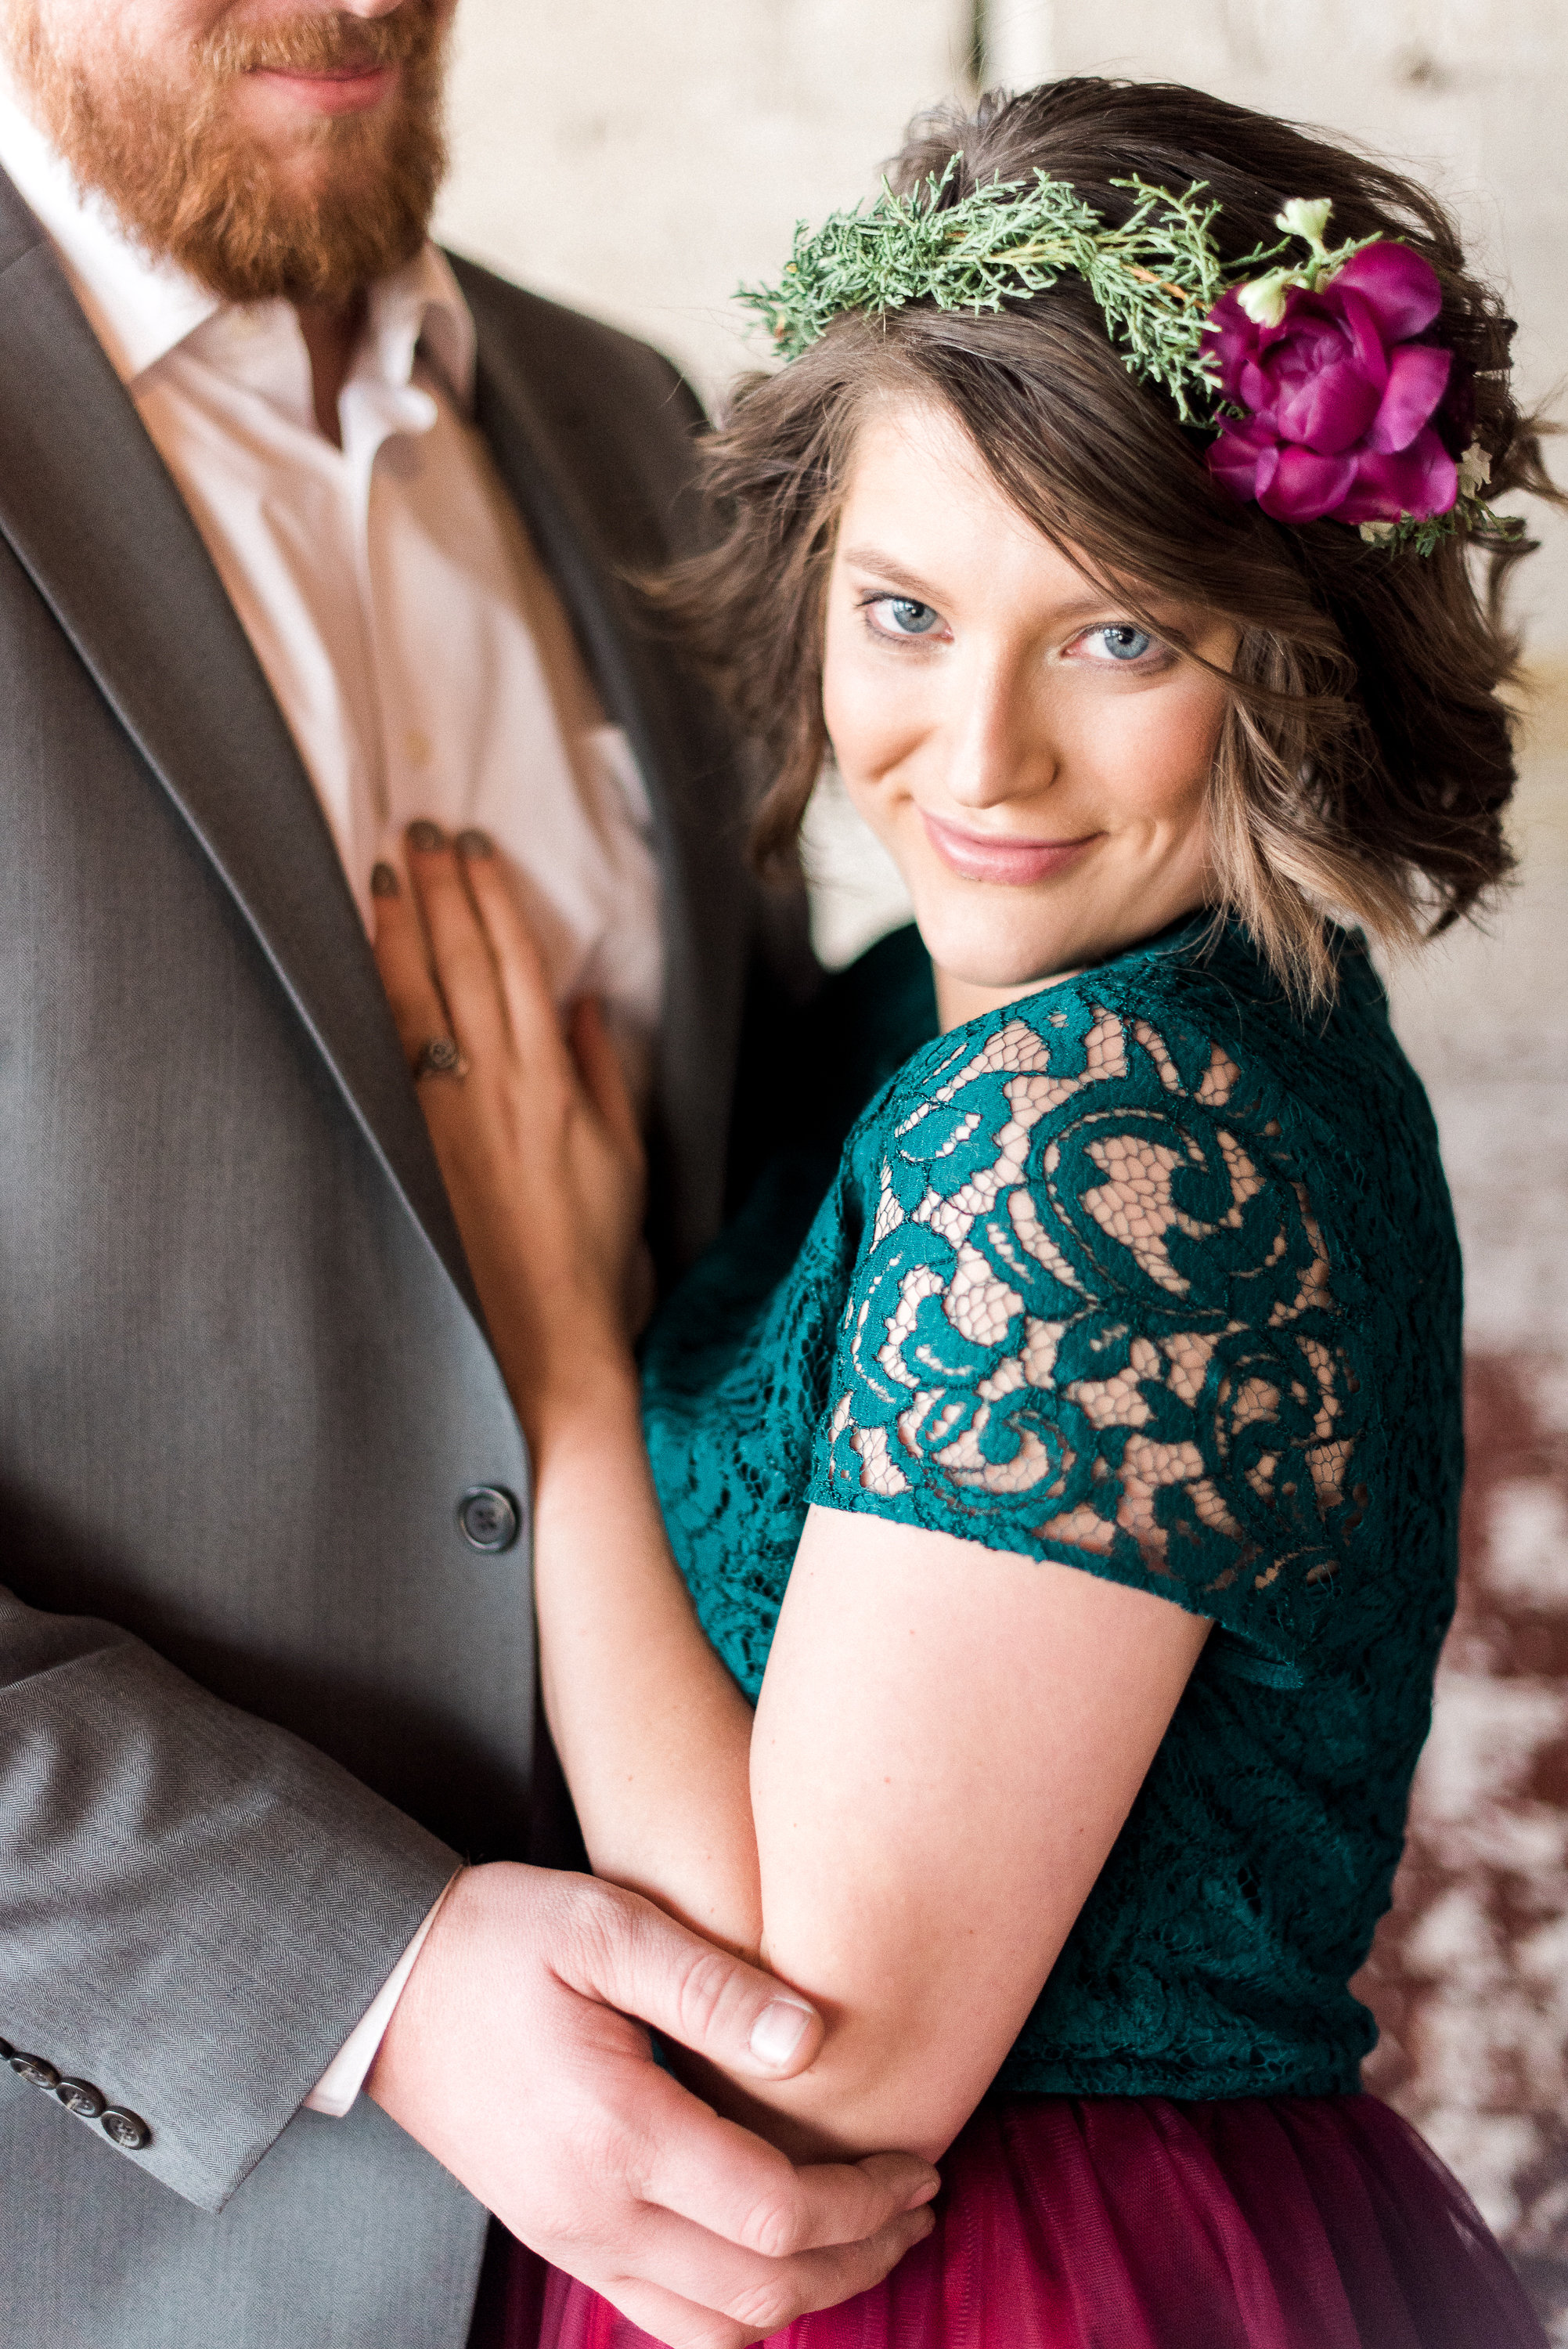 Dayton_Jewel_Industrial_Boho_Wedding-312.jpg